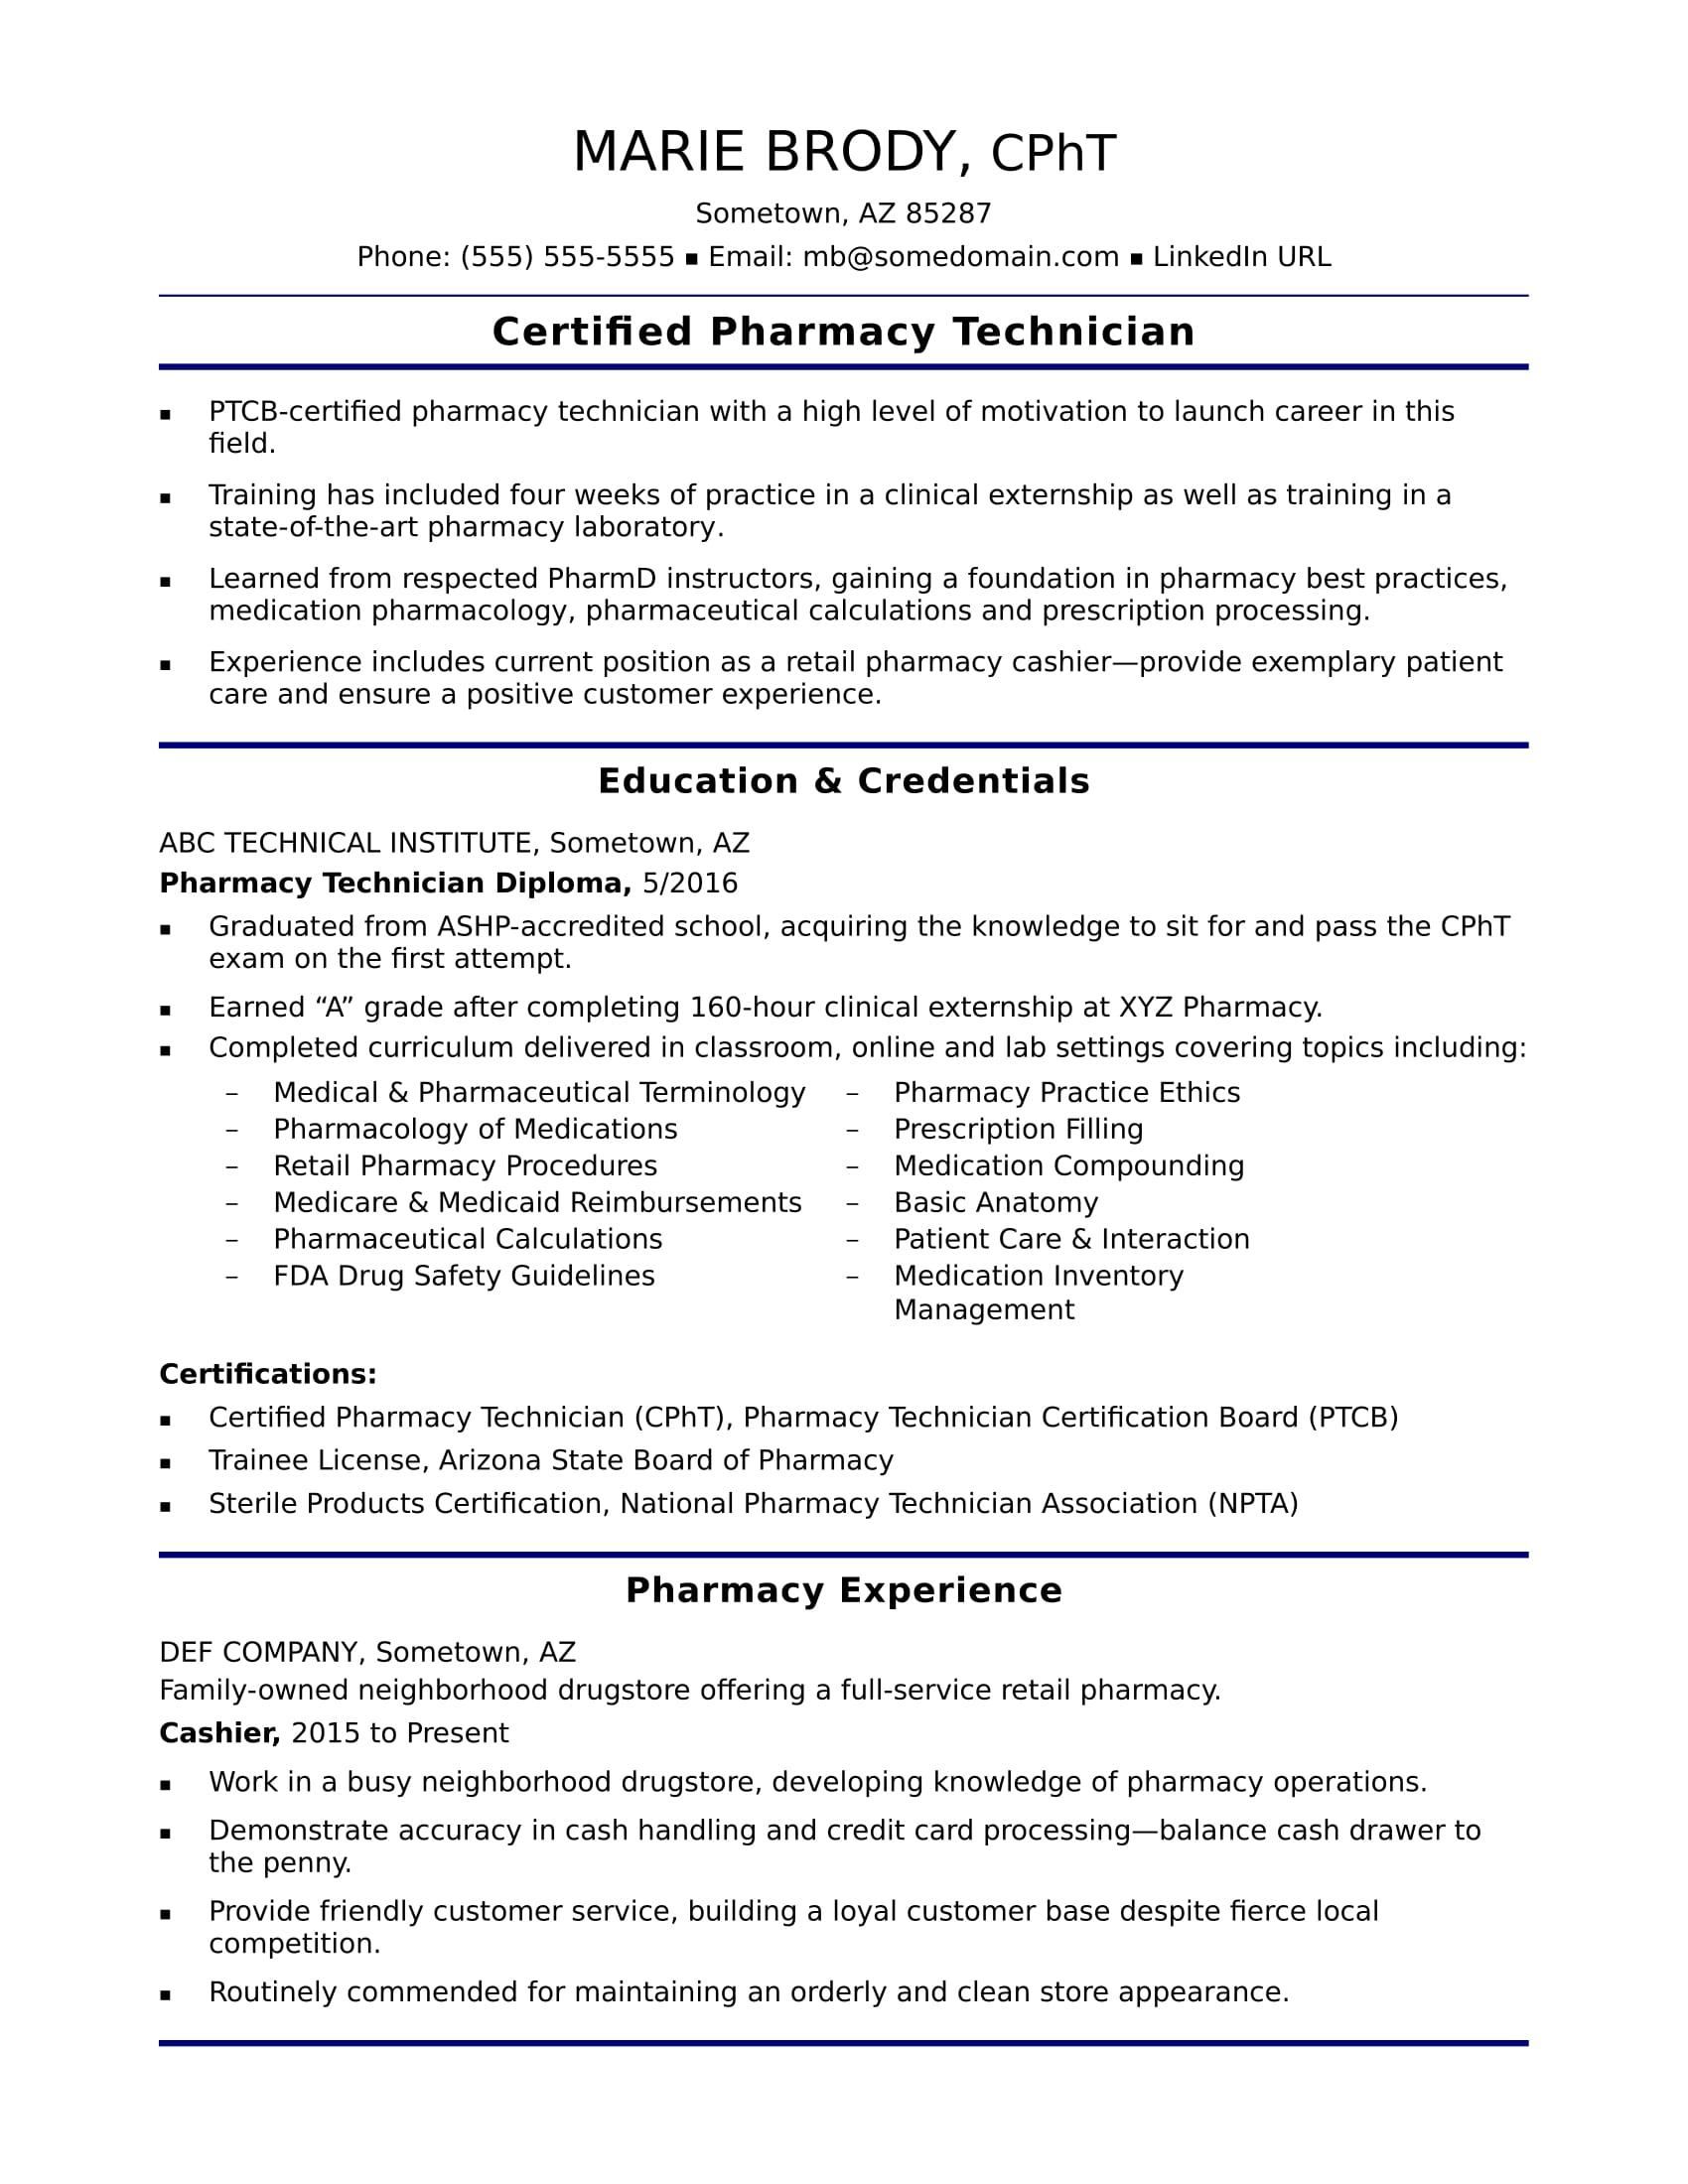 Entry Level Pharmacy Technician Resume Sample | Monster.com